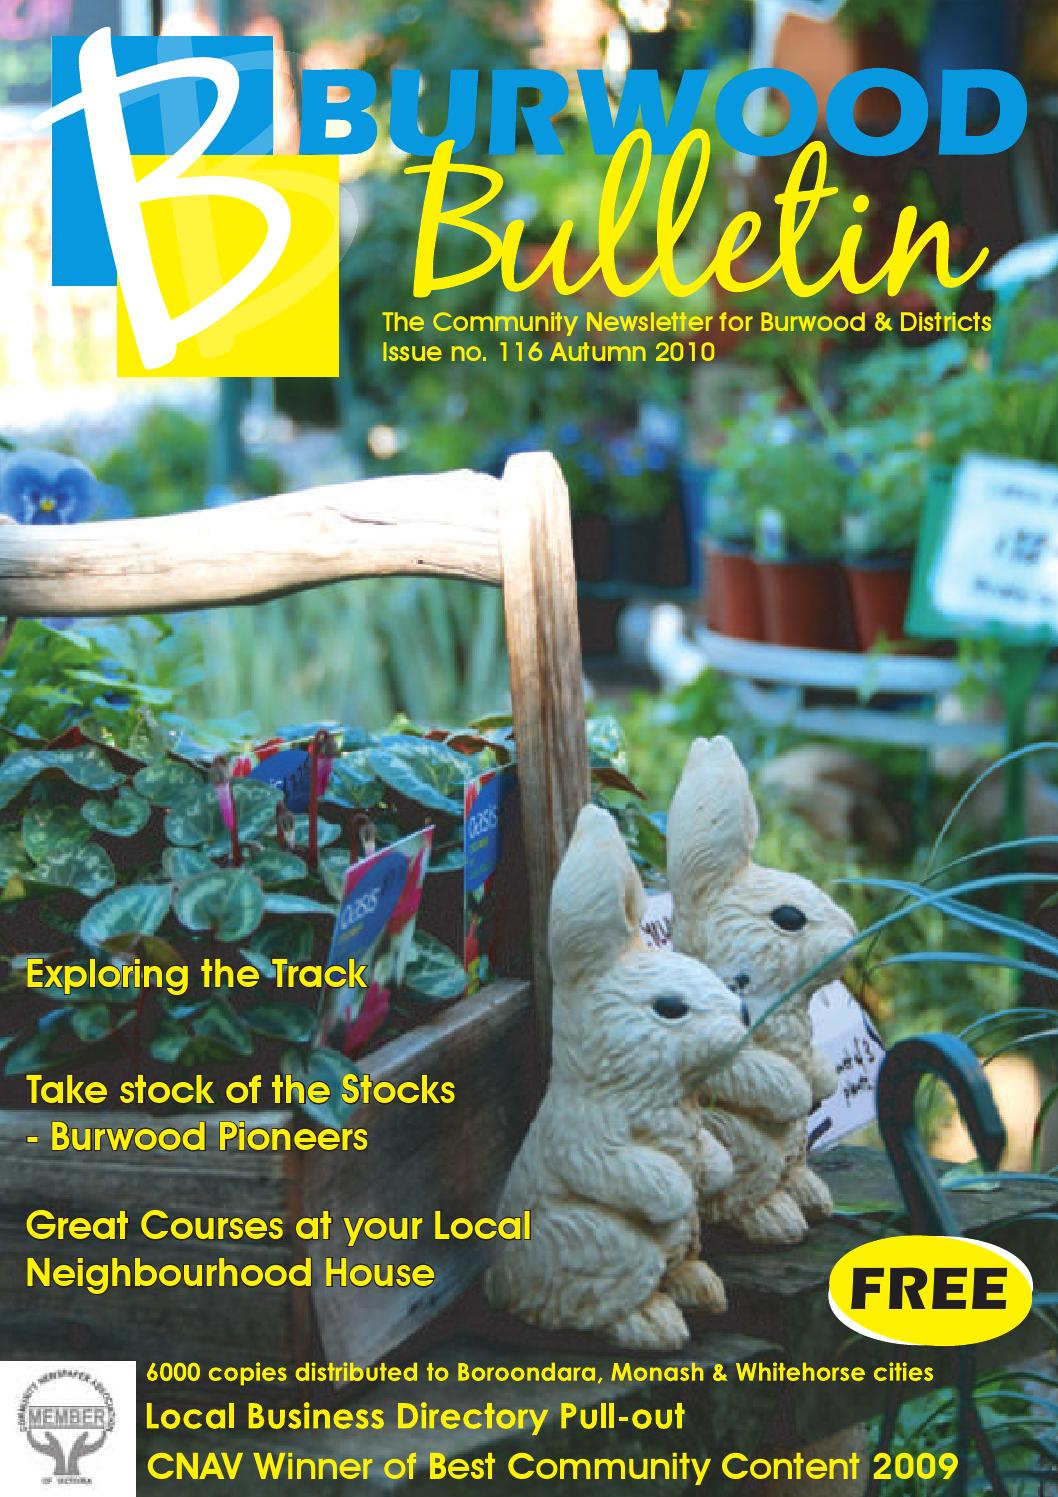 Burwood bulletin issue #116 by Burwood Bulletin - issuu